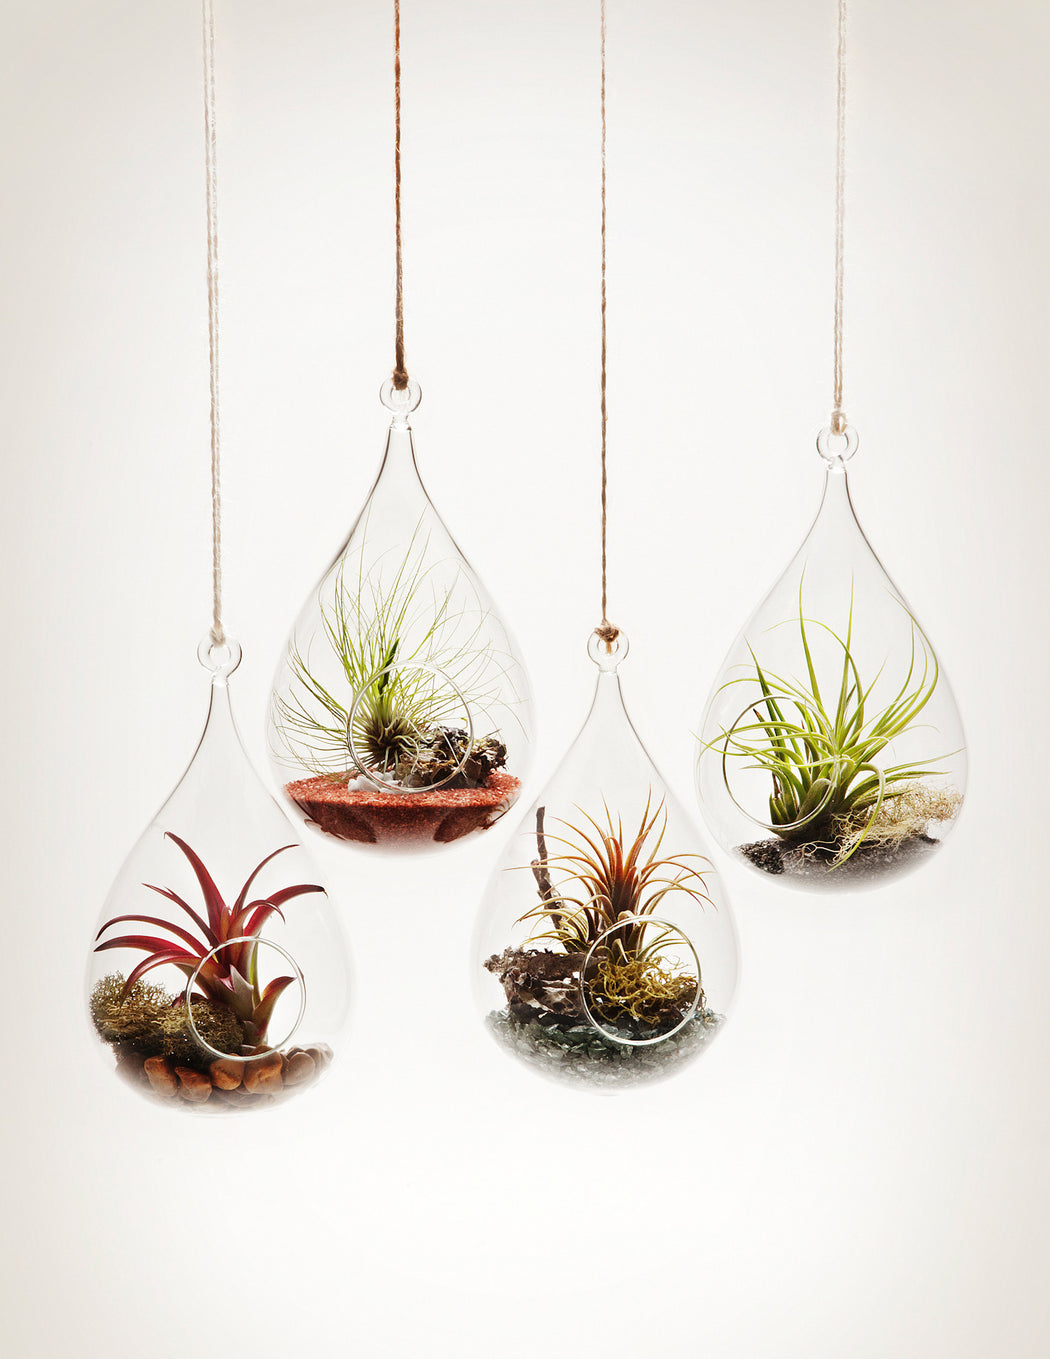 Hanging Aeriums - Wren's Nest shape with tillandsia air plants